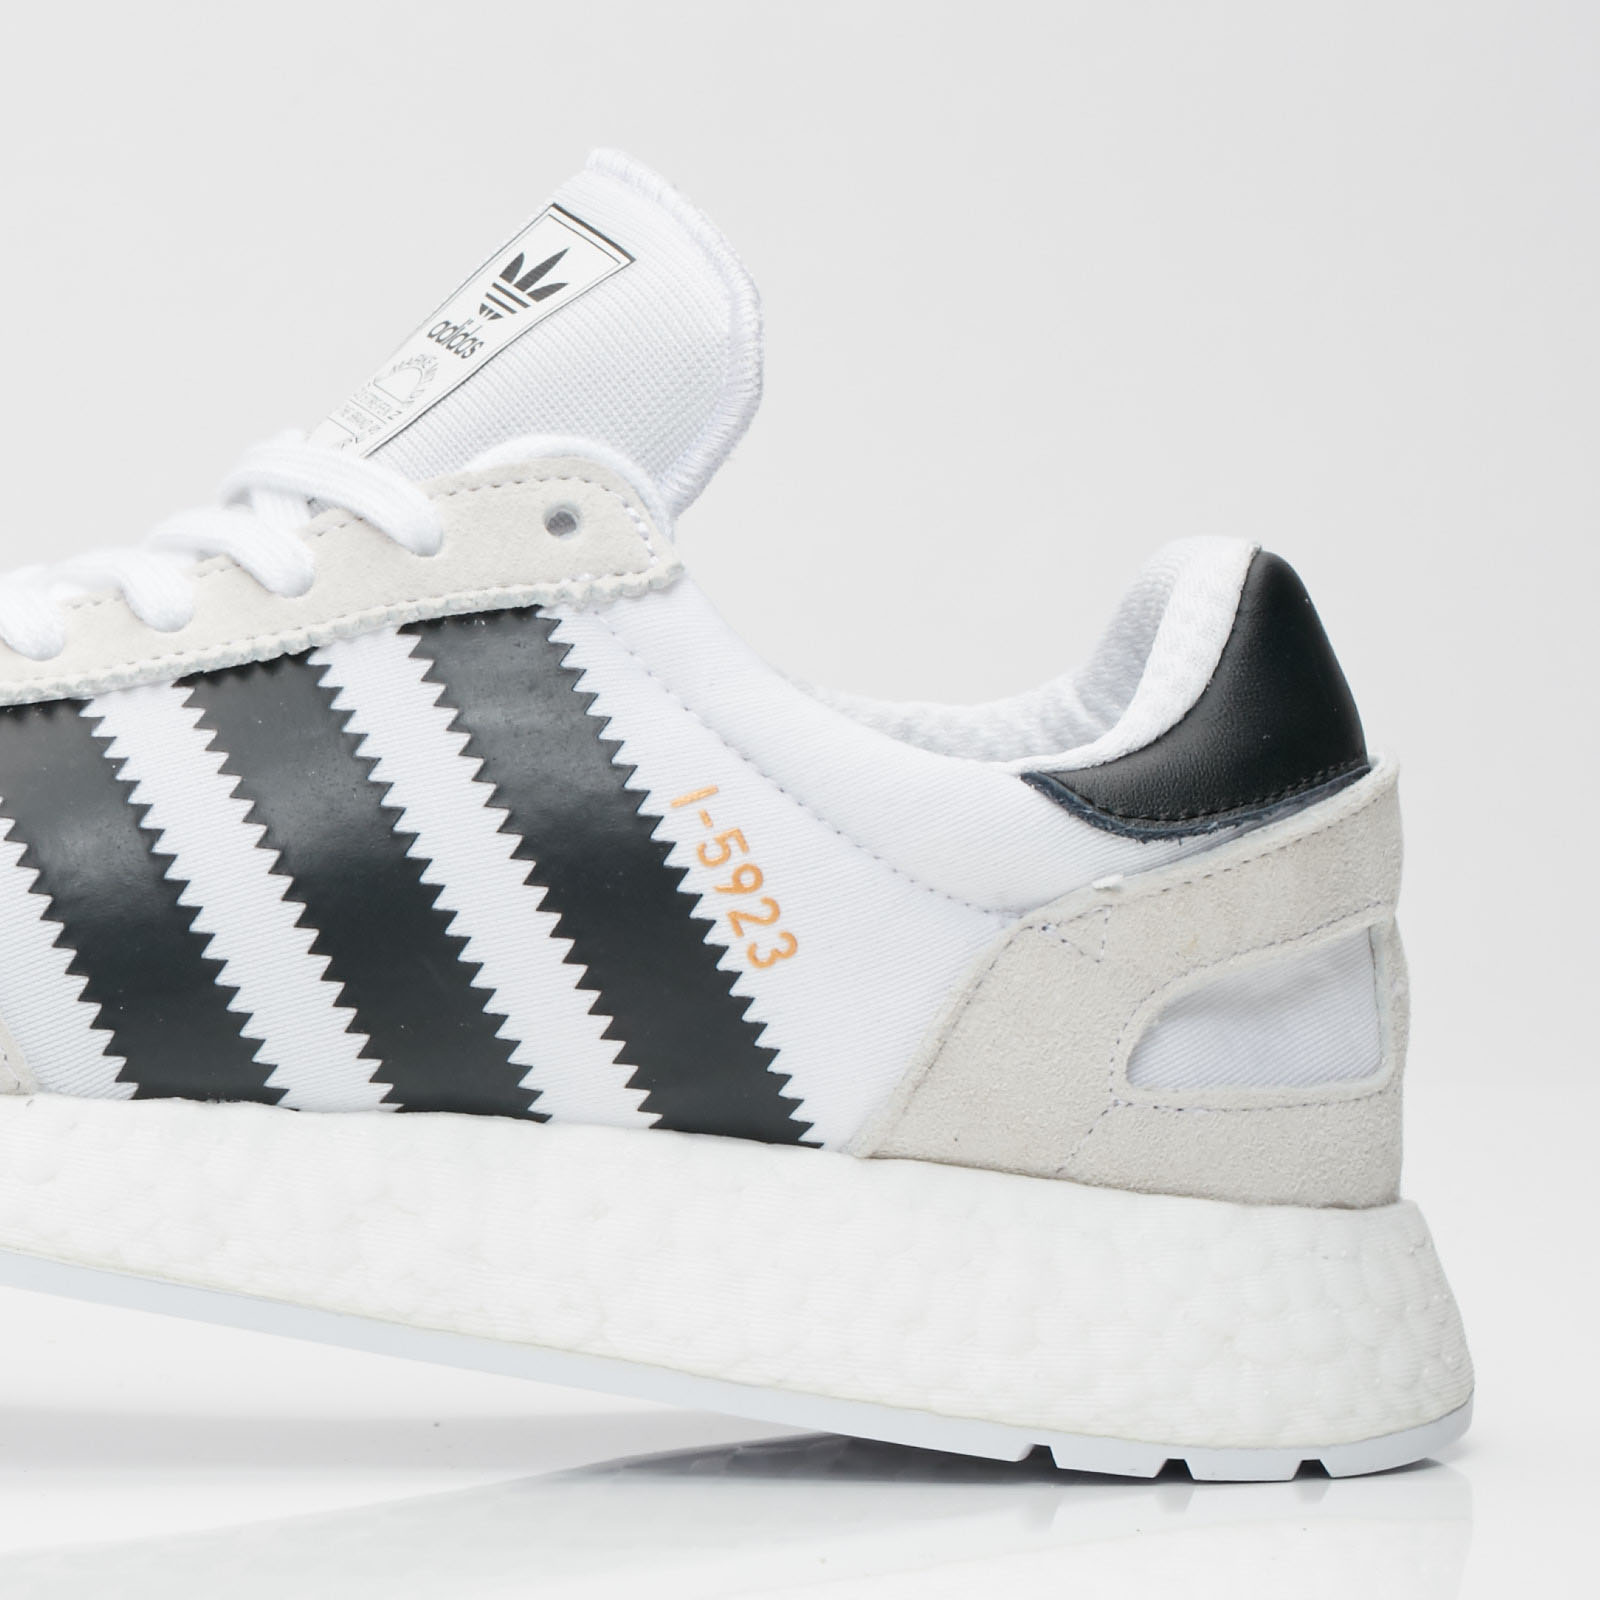 adidas I 5923 Cq2489 Sneakersnstuff | sneakers